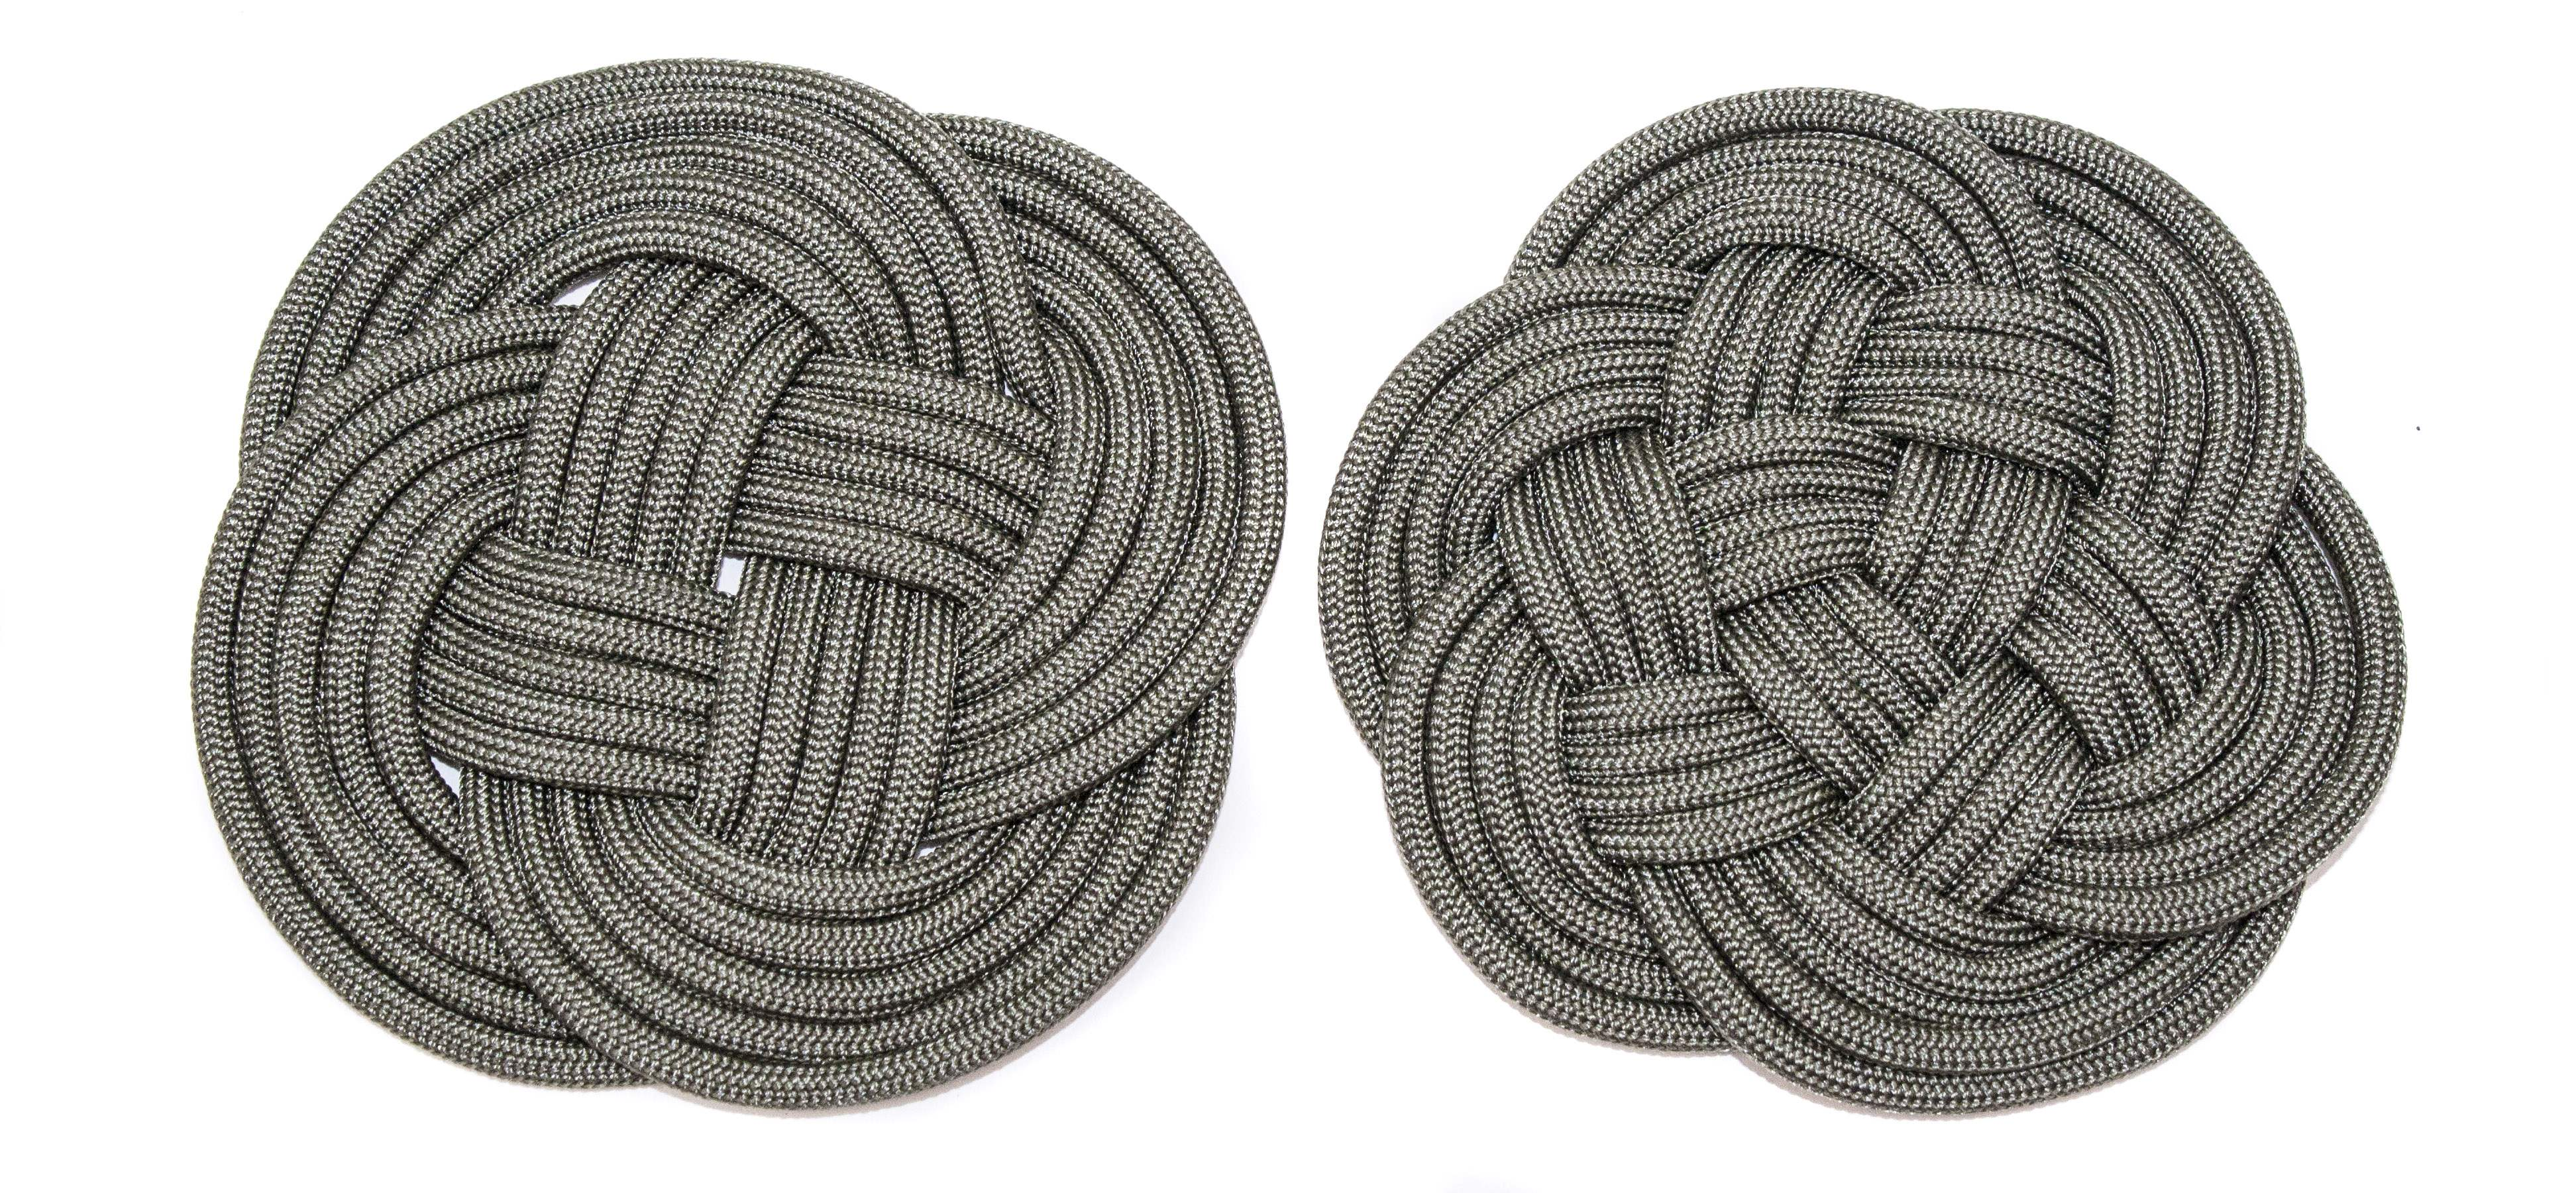 Paracord Turk's Head Coasters